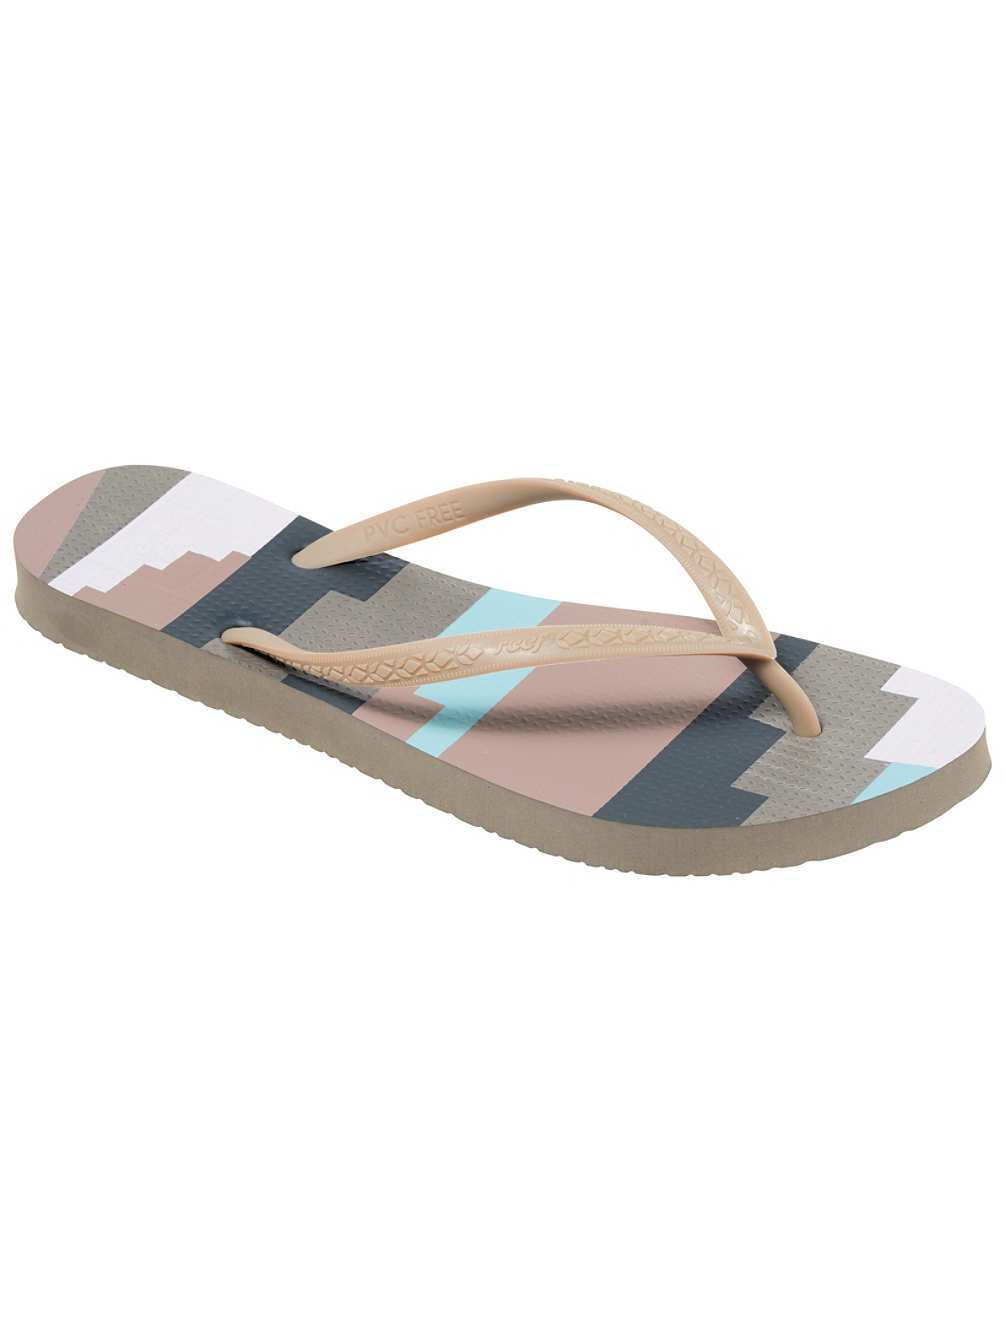 Reef Taupe Reef REEF Taupe Reef Native 69f1fc